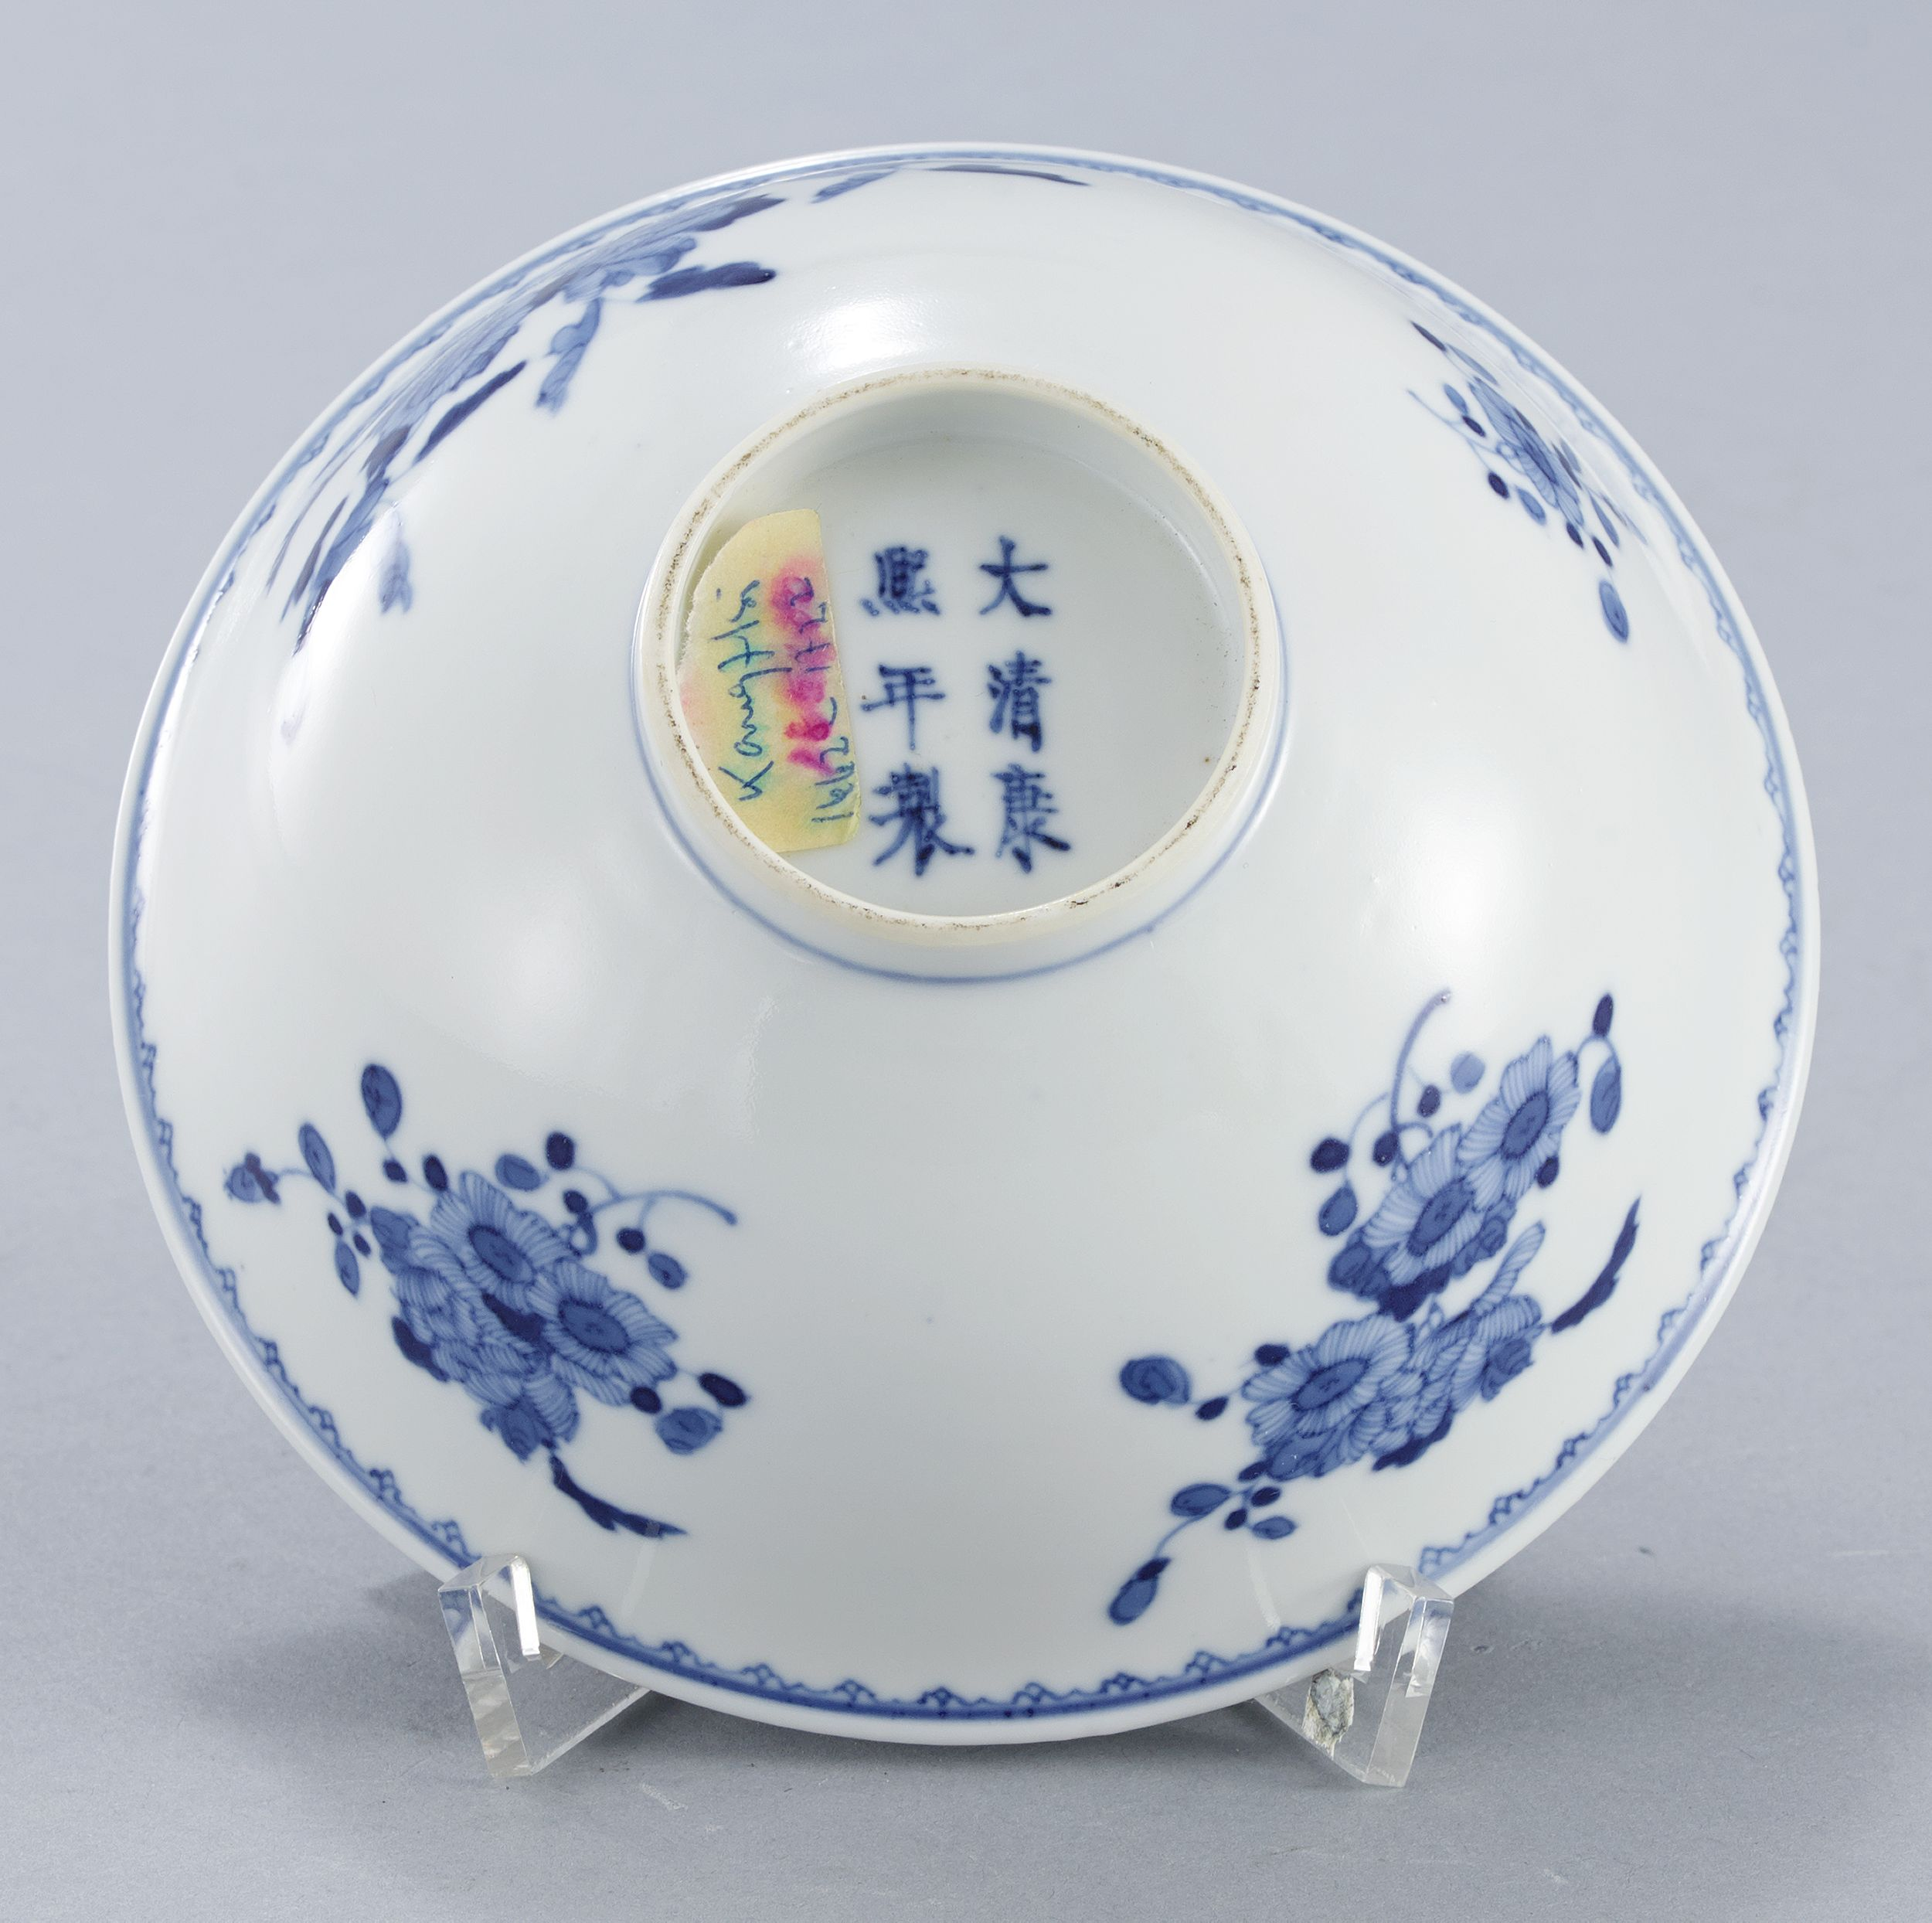 A Blue and White Bowl